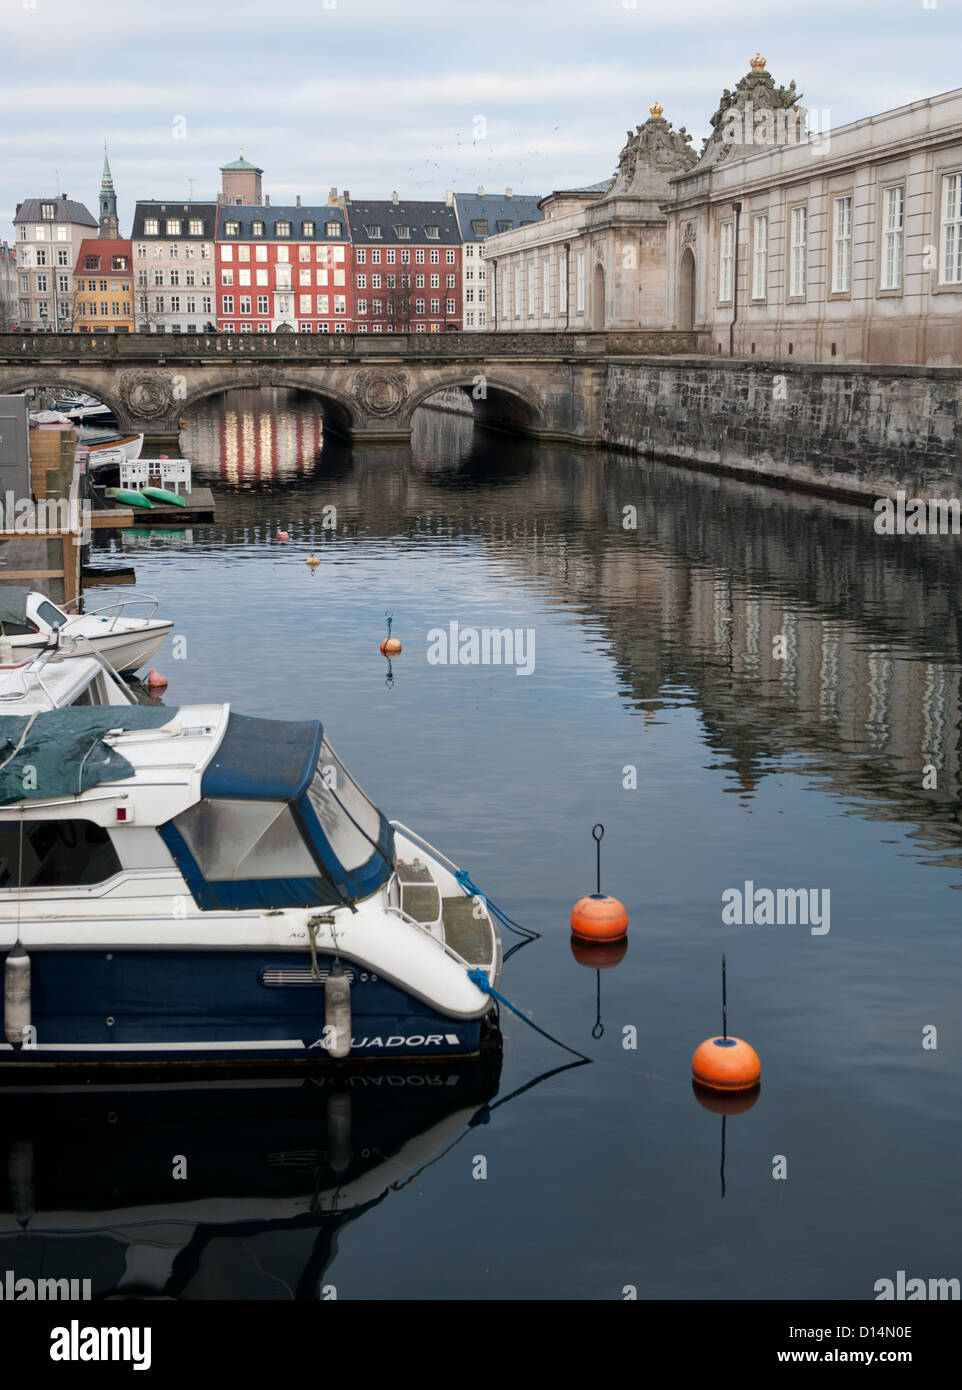 Looking along Frederiksholms Kanal towards the inner city, with Nybrogade at the horizon and Christiansborg Palace - Stock Image